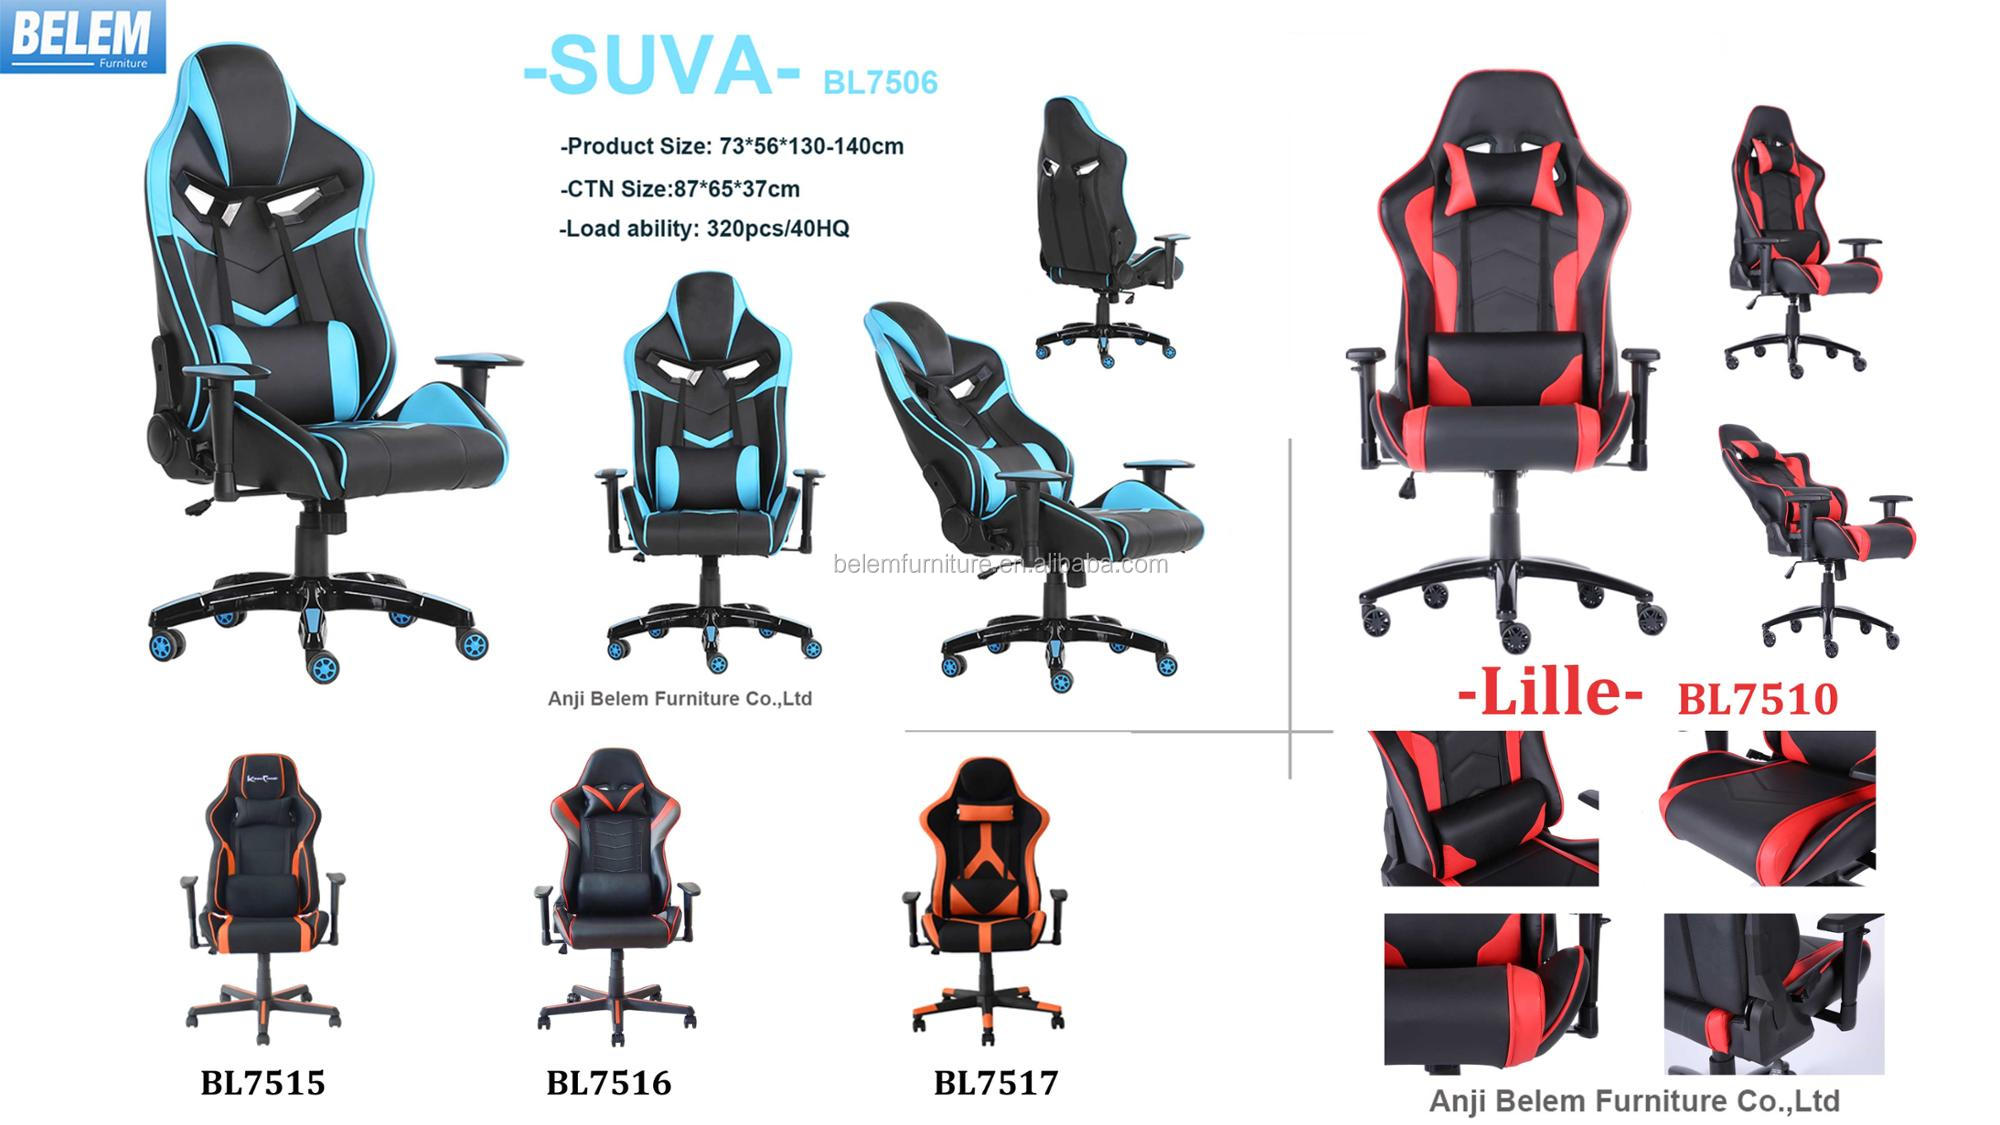 2018 Popular High Quality PU Game Racing Chair with Adjustable Armrest and High Gloss Base -SUVA- BL-7506